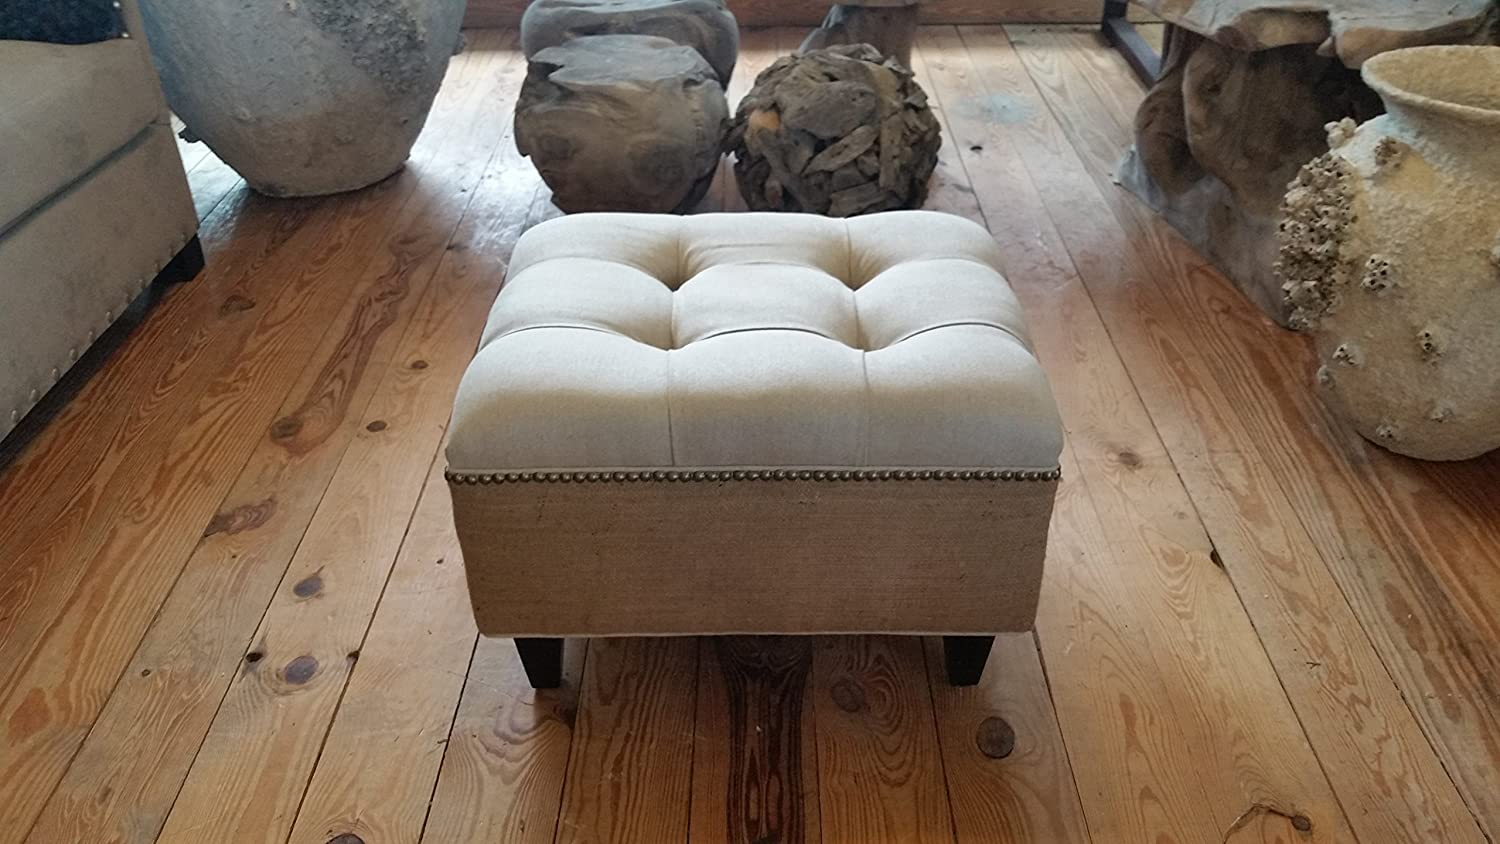 Amazon.com: Linen and Burlap Tufted Upholstered Ottoman With Nail Head~  Design 59 inc.: Handmade - Amazon.com: Linen And Burlap Tufted Upholstered Ottoman With Nail